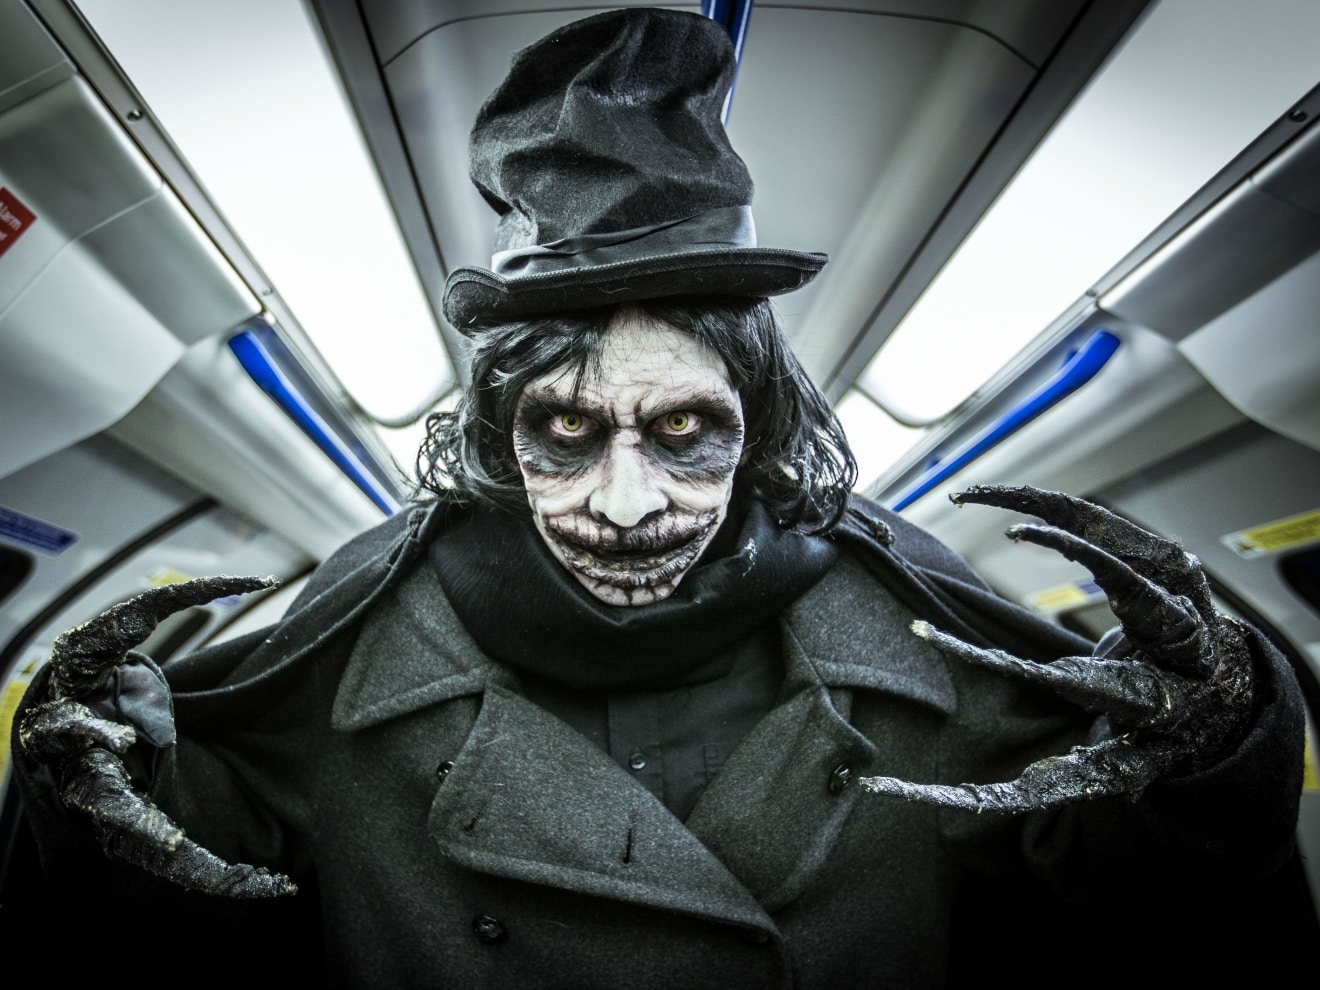 'The Babadook' Wicked Evidence That Good Mothers Can Go Bad